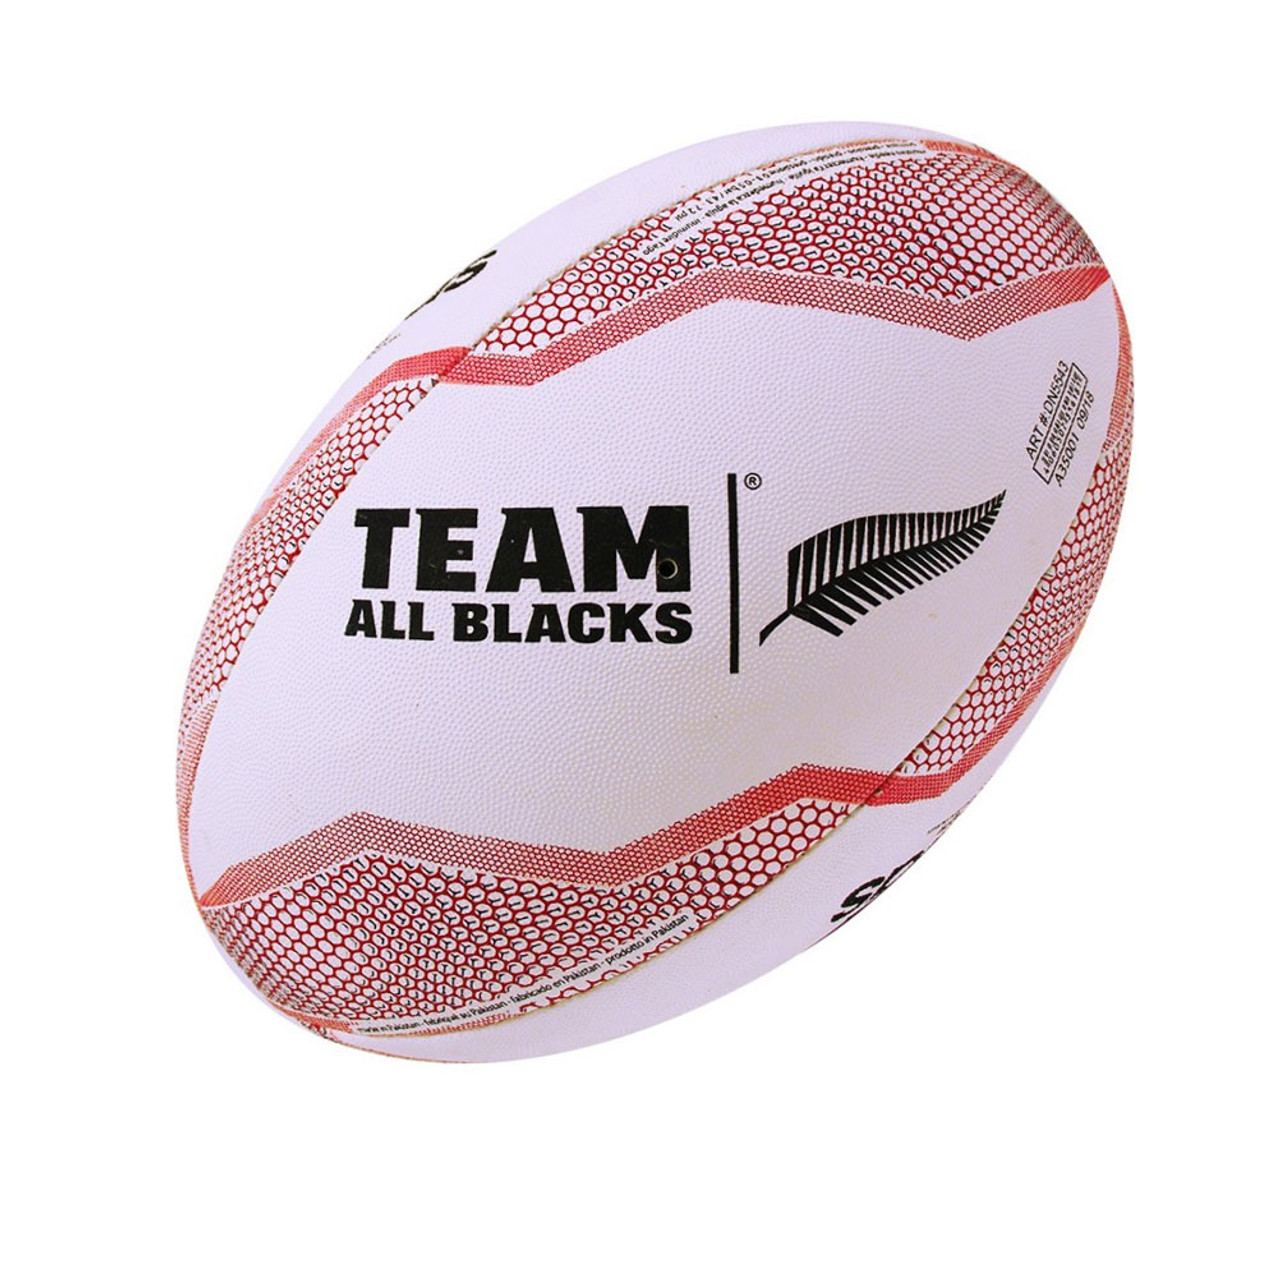 cheap for discount 05ee7 e612d ADIDAS Replica All Blacks Rugby ball size 5 [white/red]